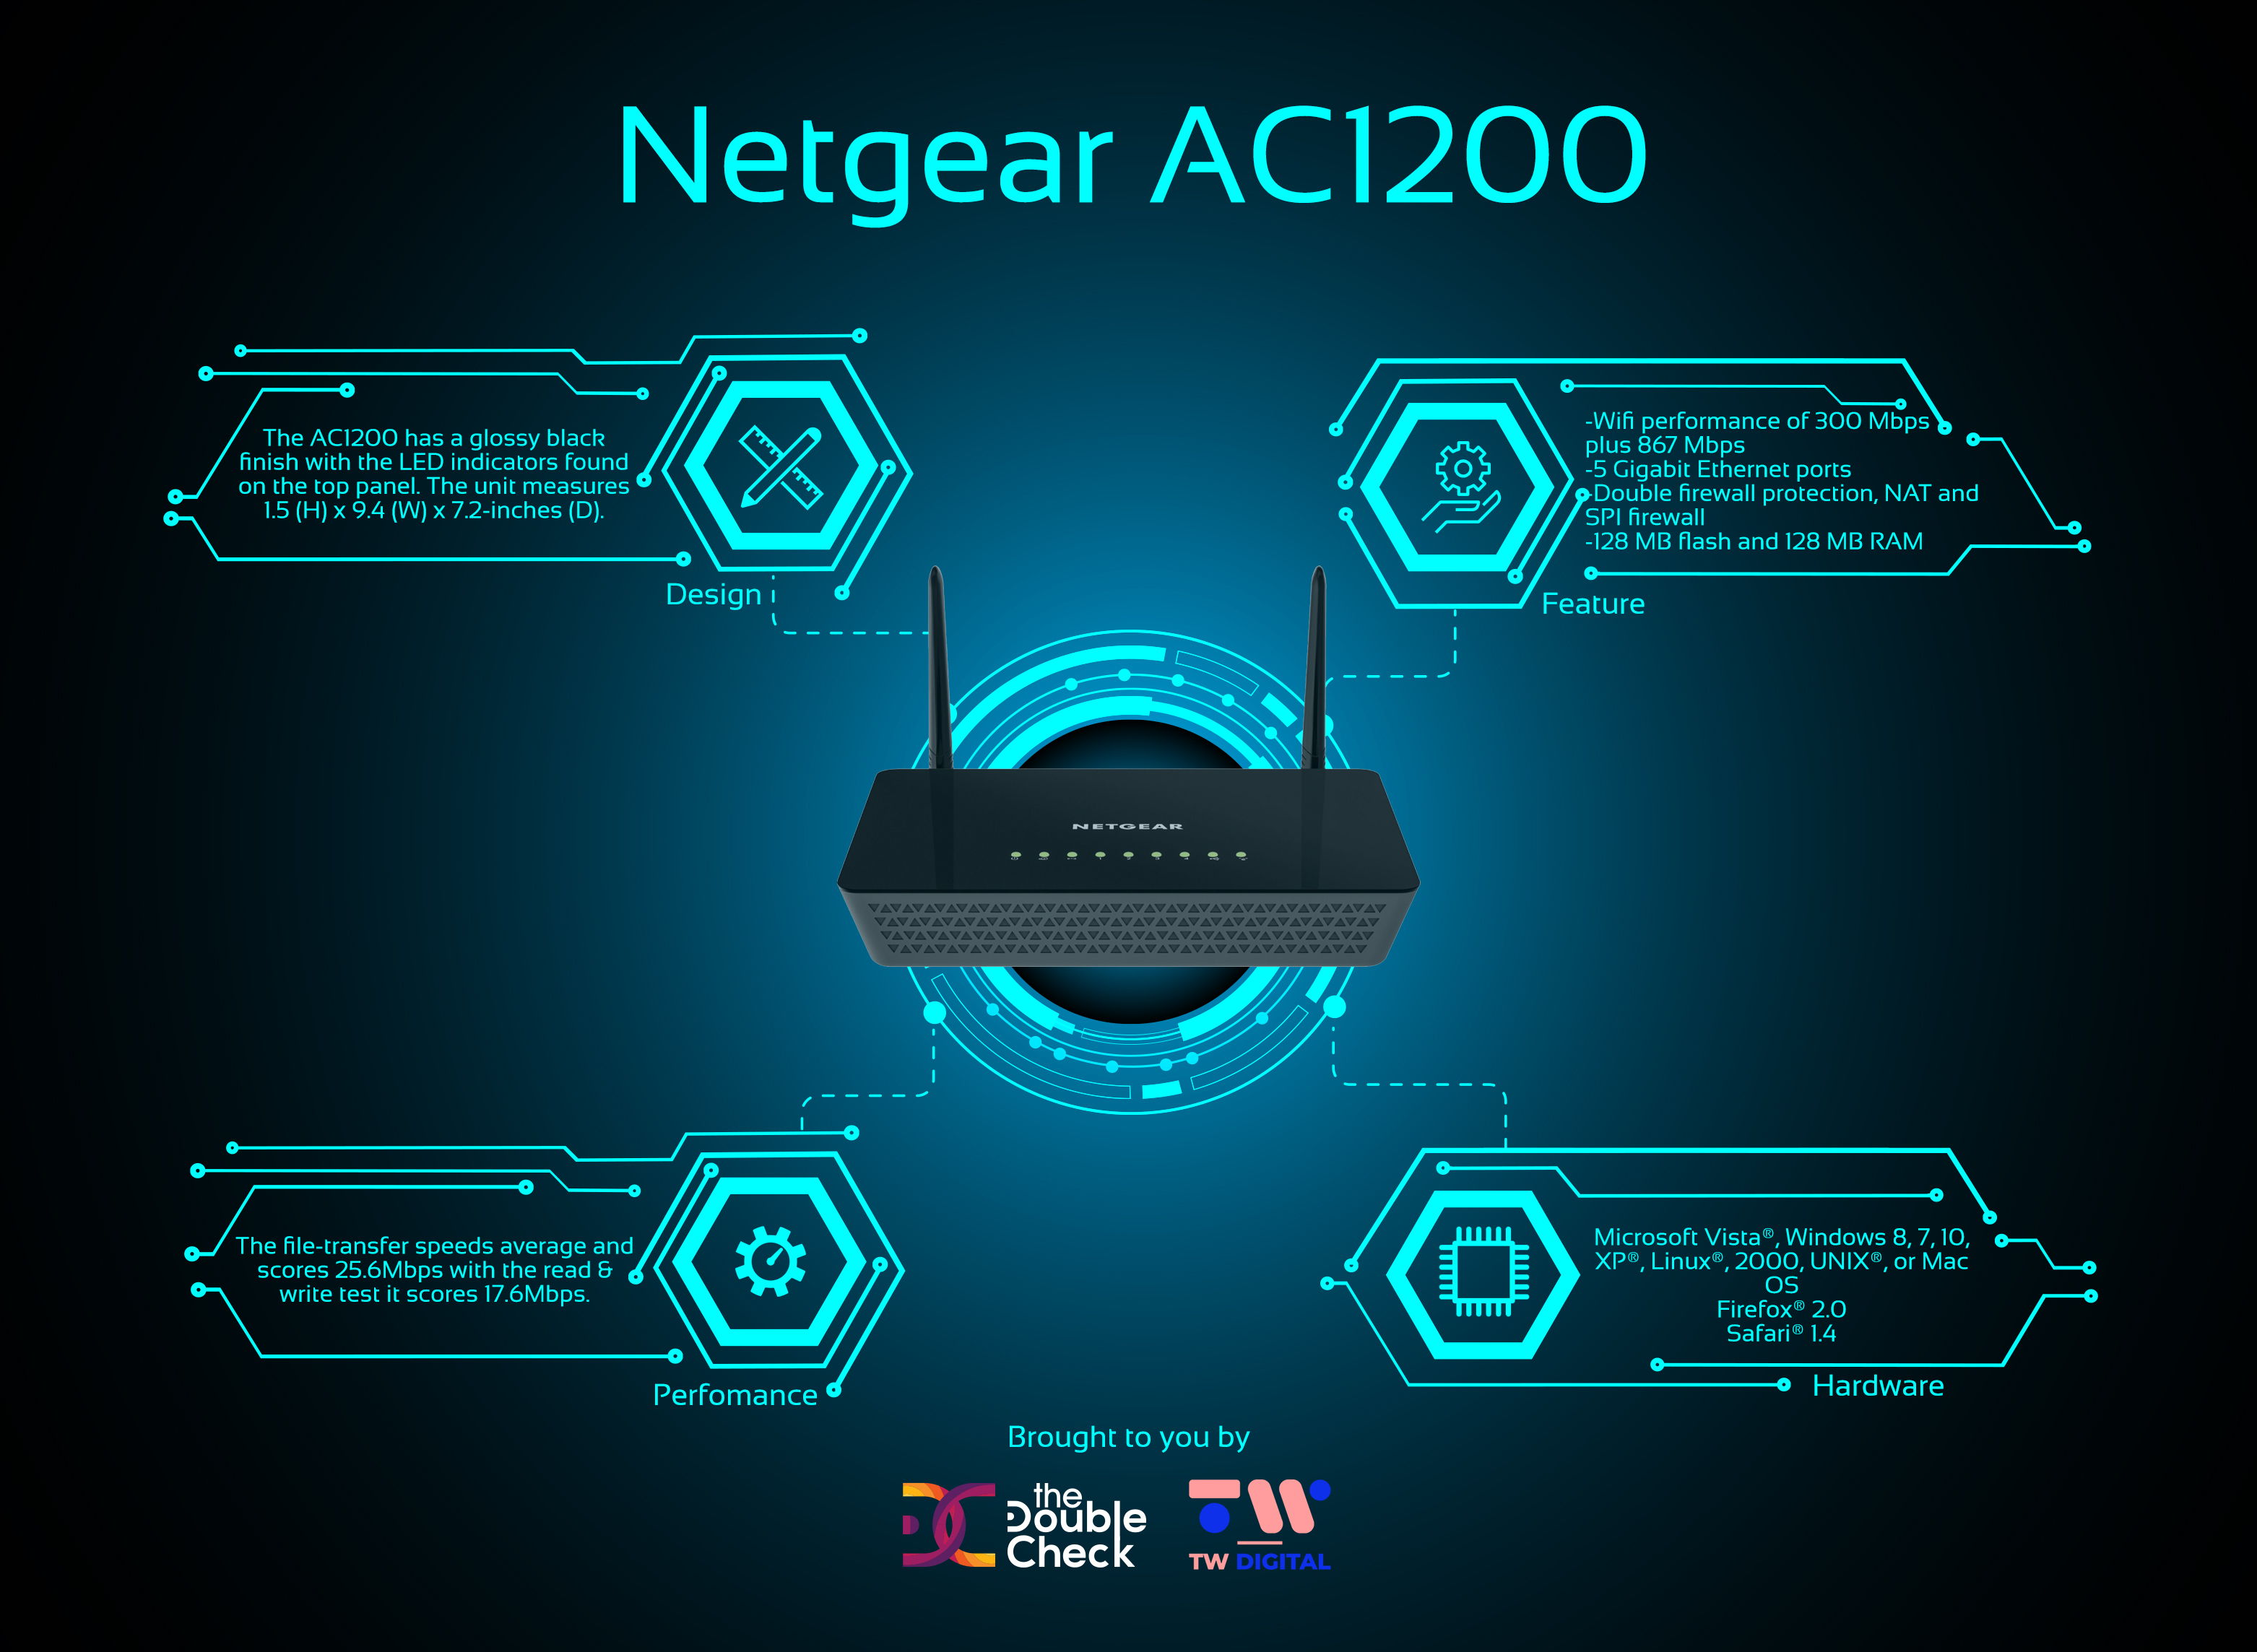 NETGEAR AC1200 Smart Wireless Router Review – The Double Check